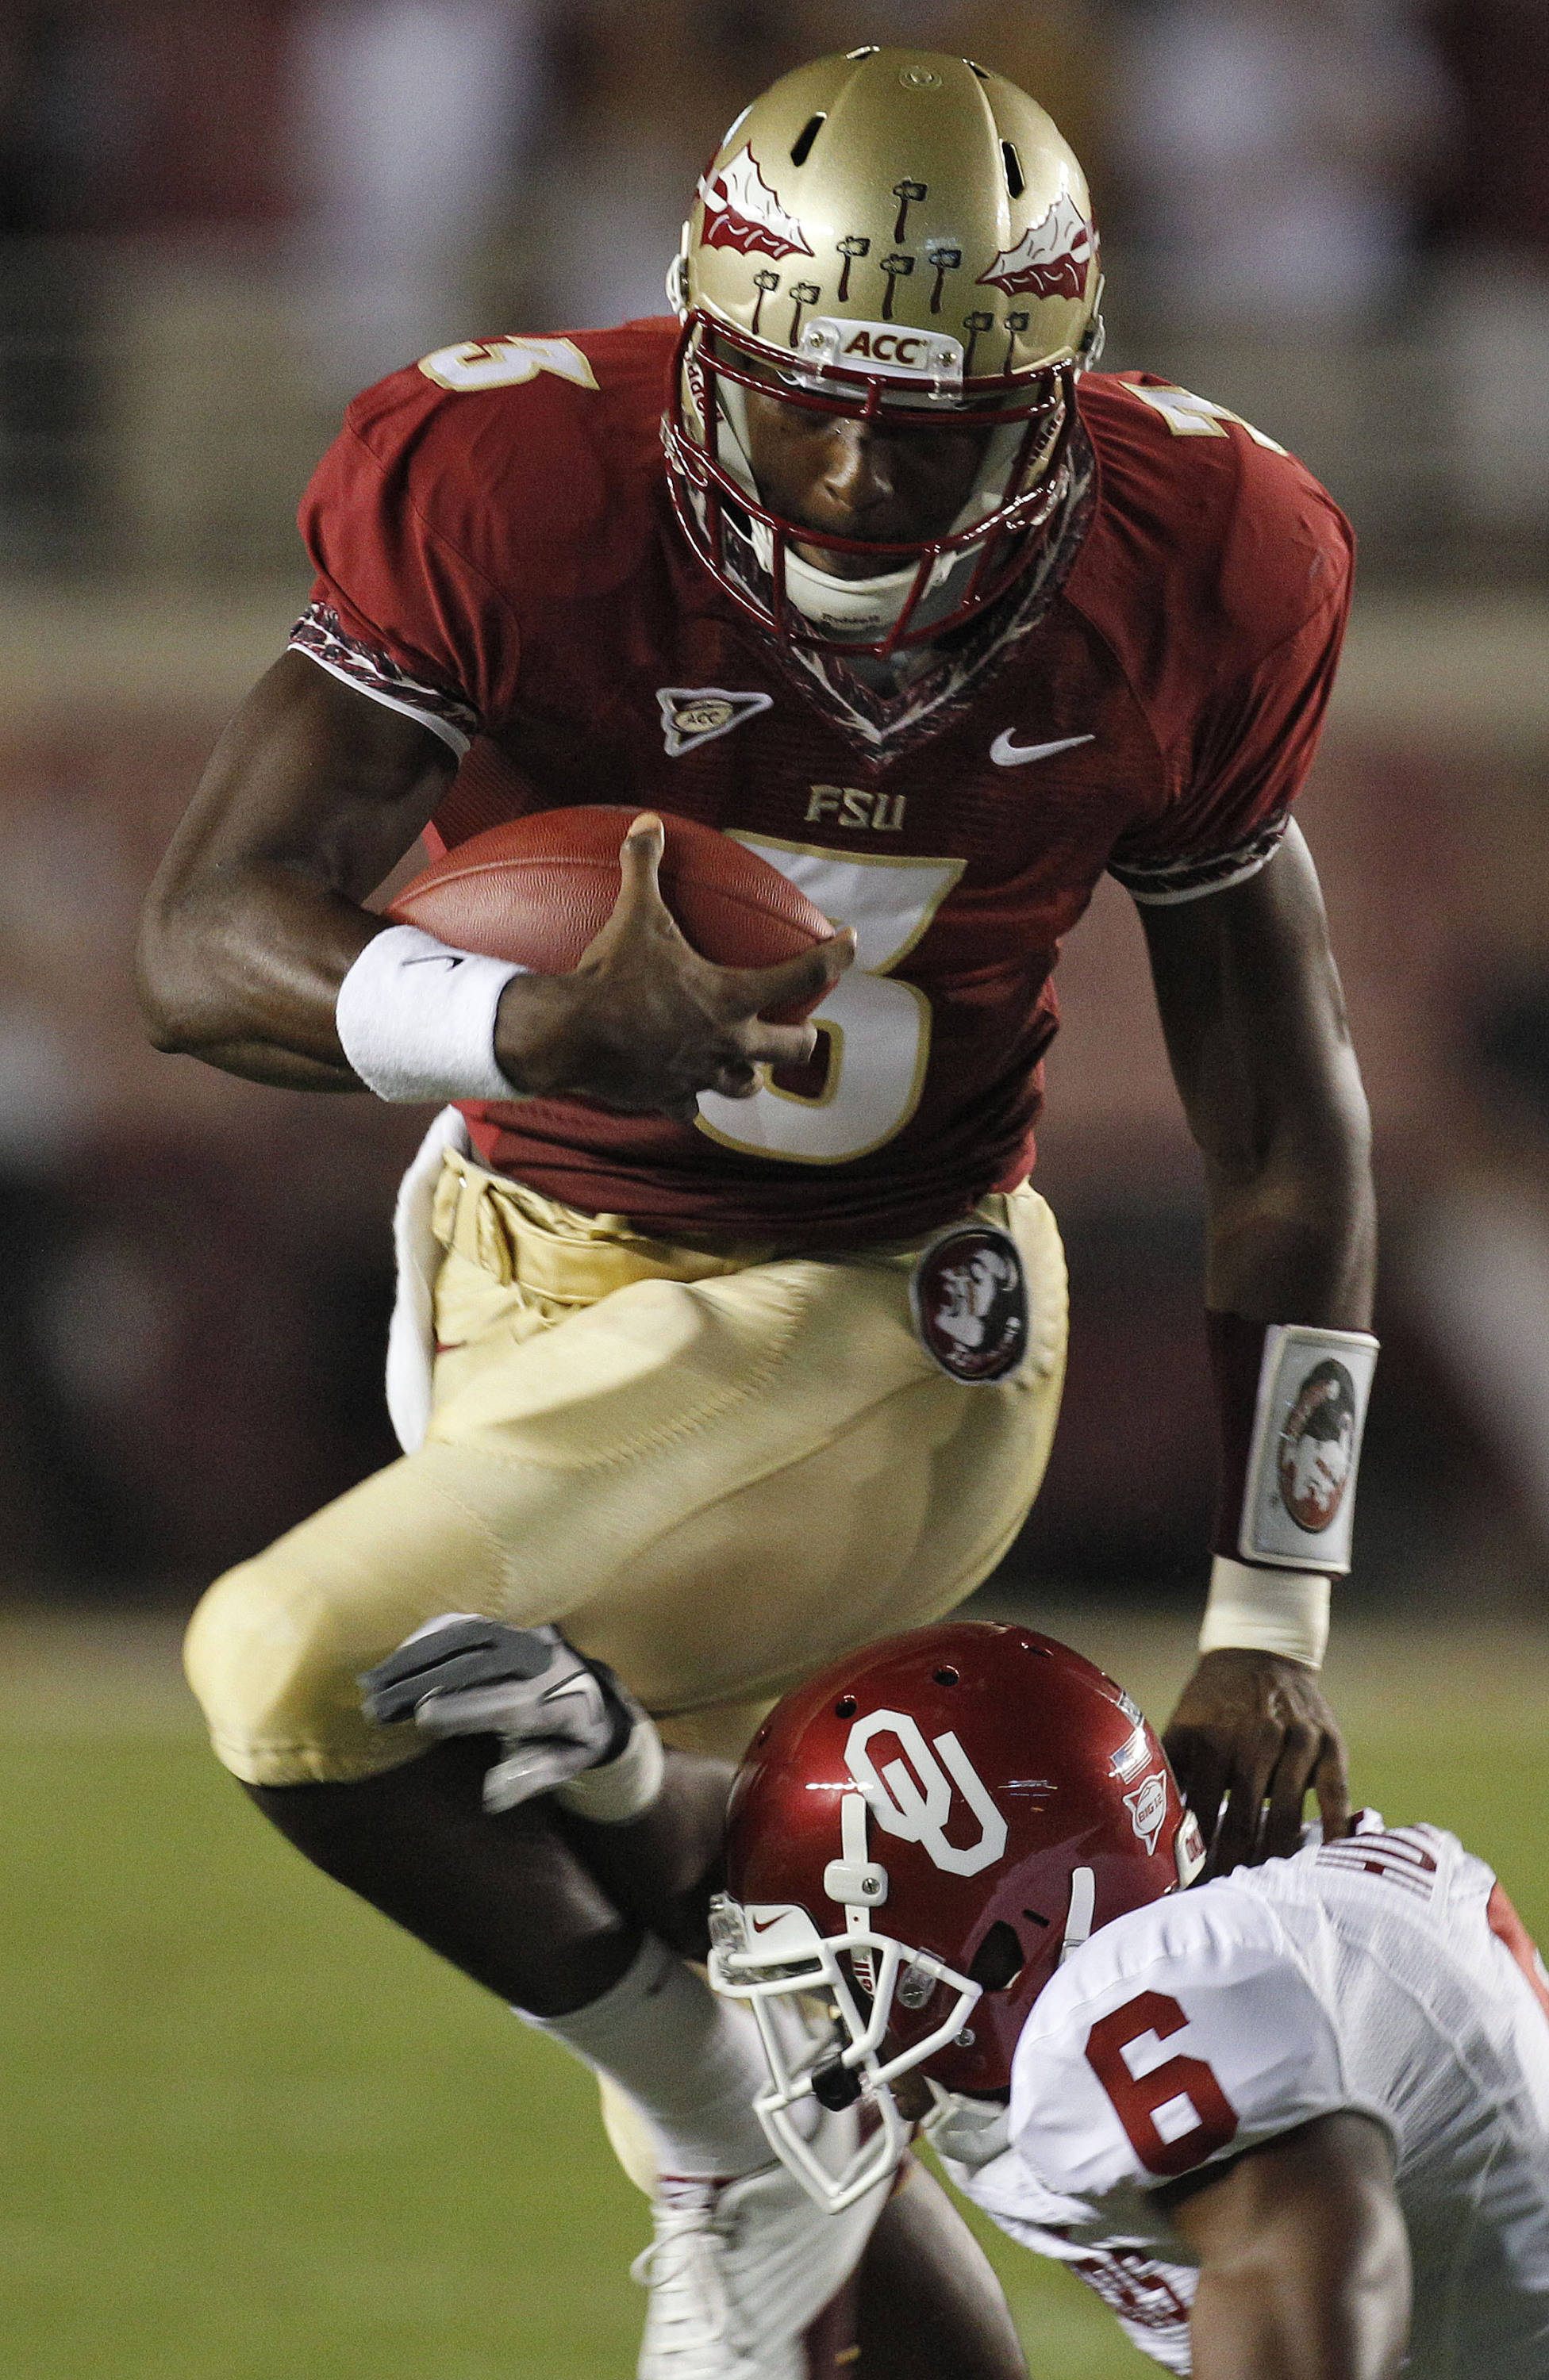 Oklahoma defensive back Demontre Hurst (6) attempts to take down Florida State quarterback EJ Manuel during the first quarter of an NCAA college football game, Saturday, Sept. 17, 2011, in Tallahassee, Fla. (AP Photo/Chris O'Meara)